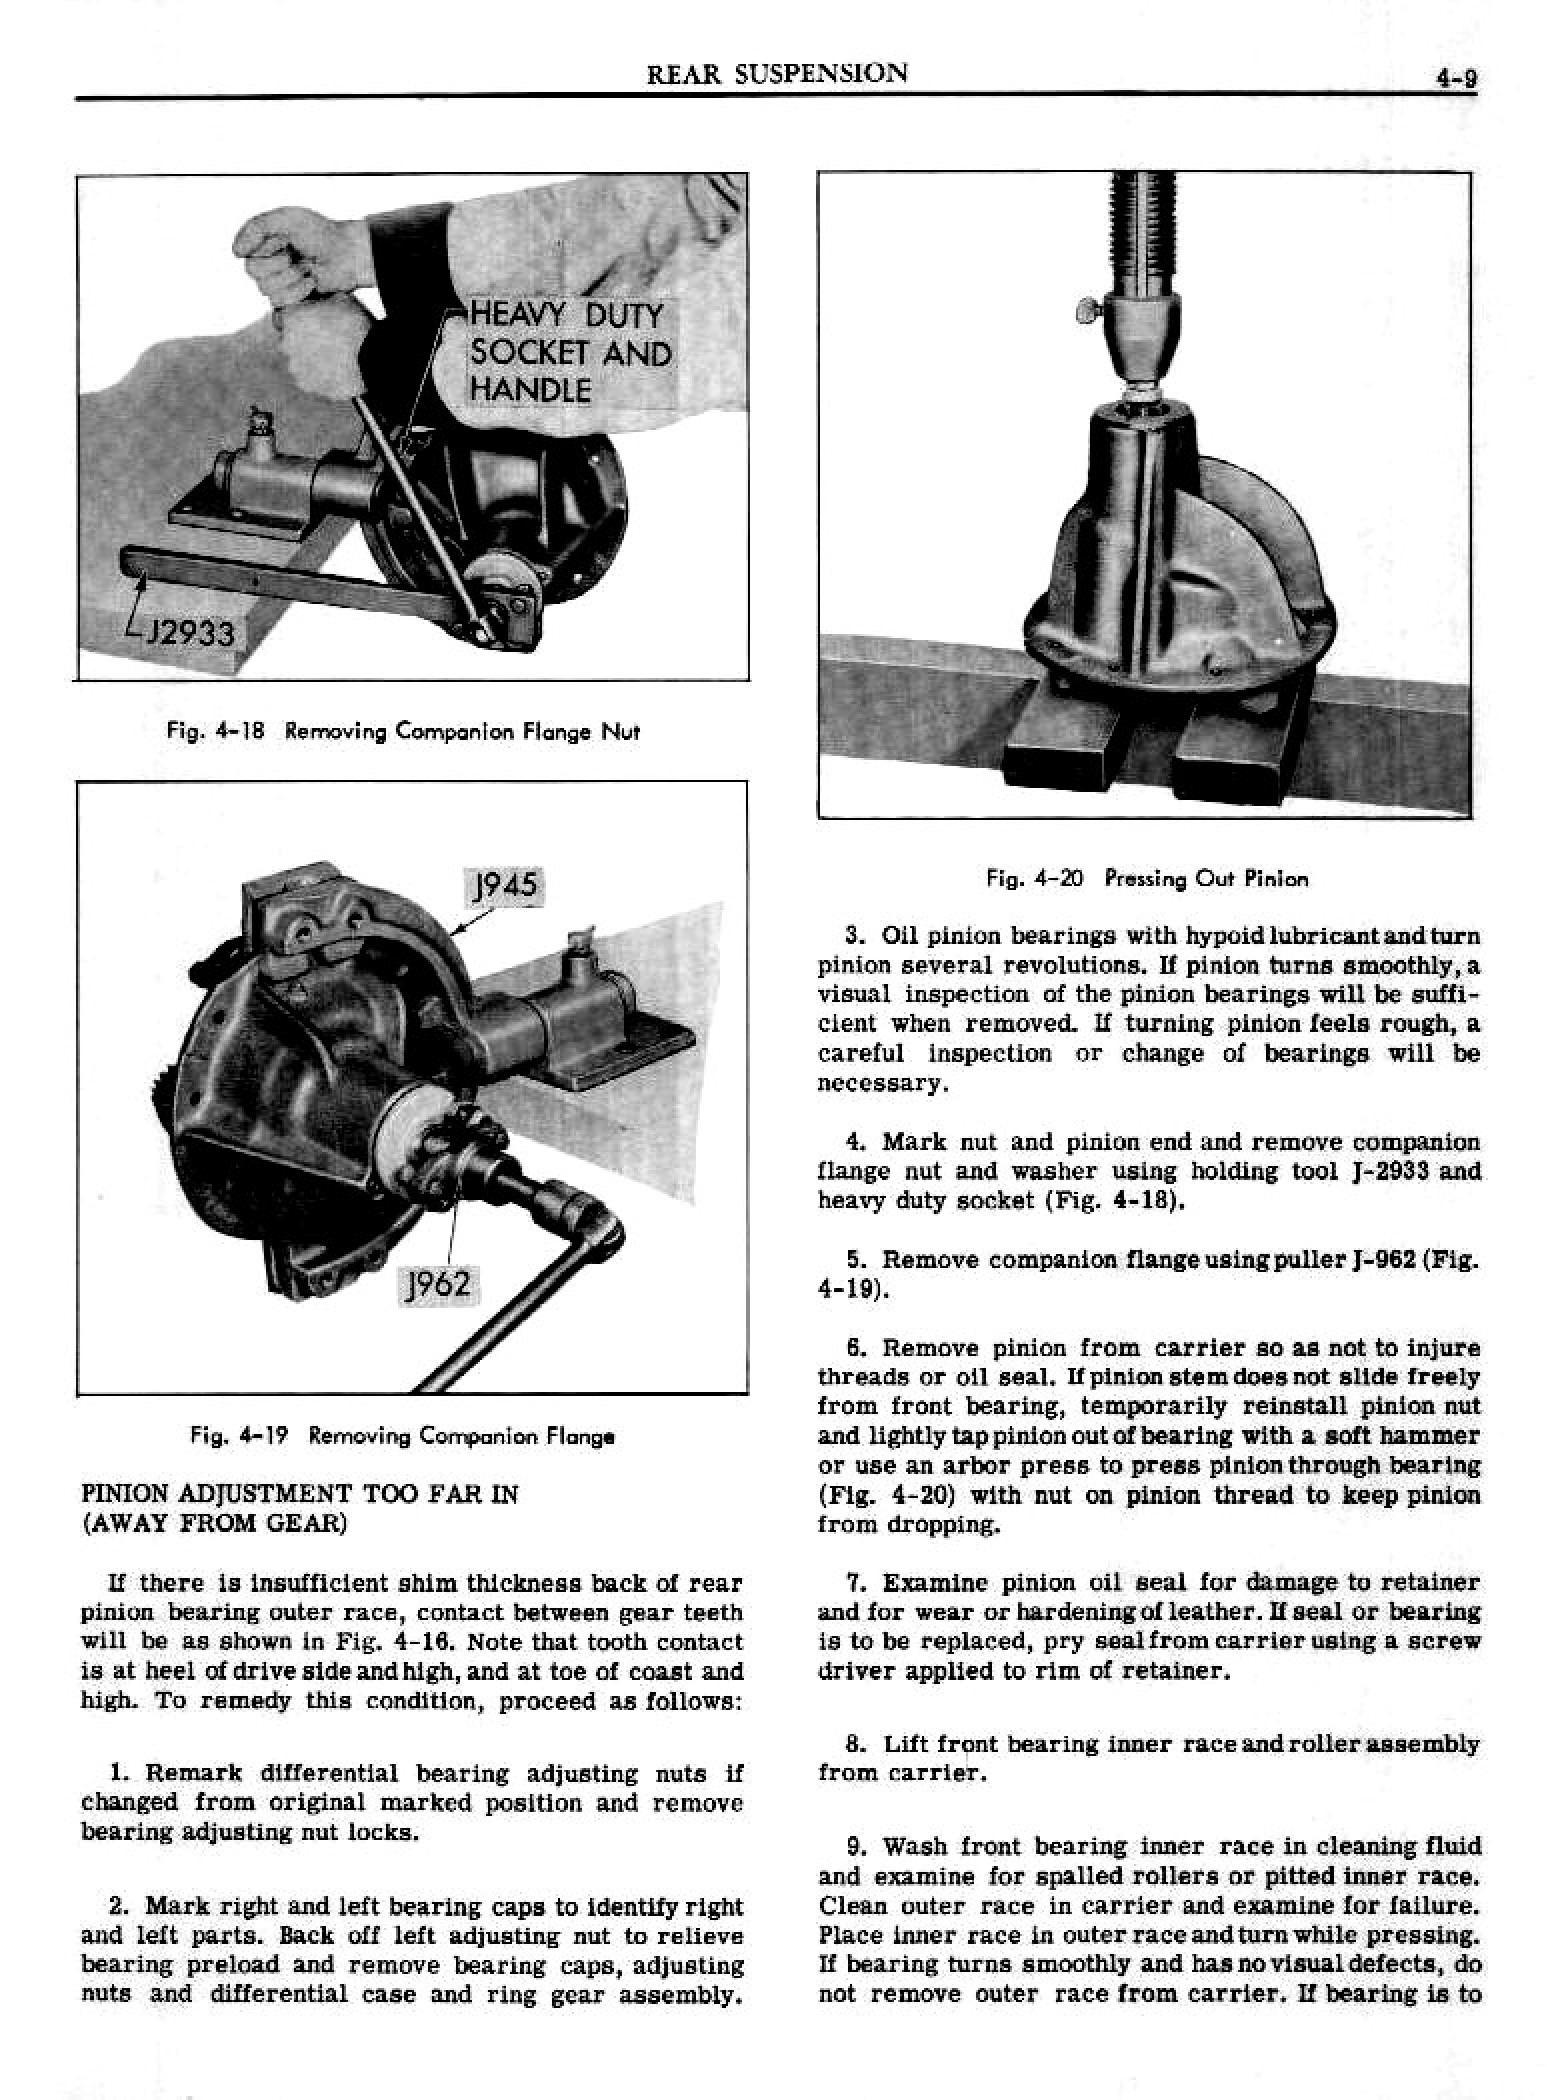 1949 Pontiac Shop Manual- Rear End Suspension Page 9 of 28